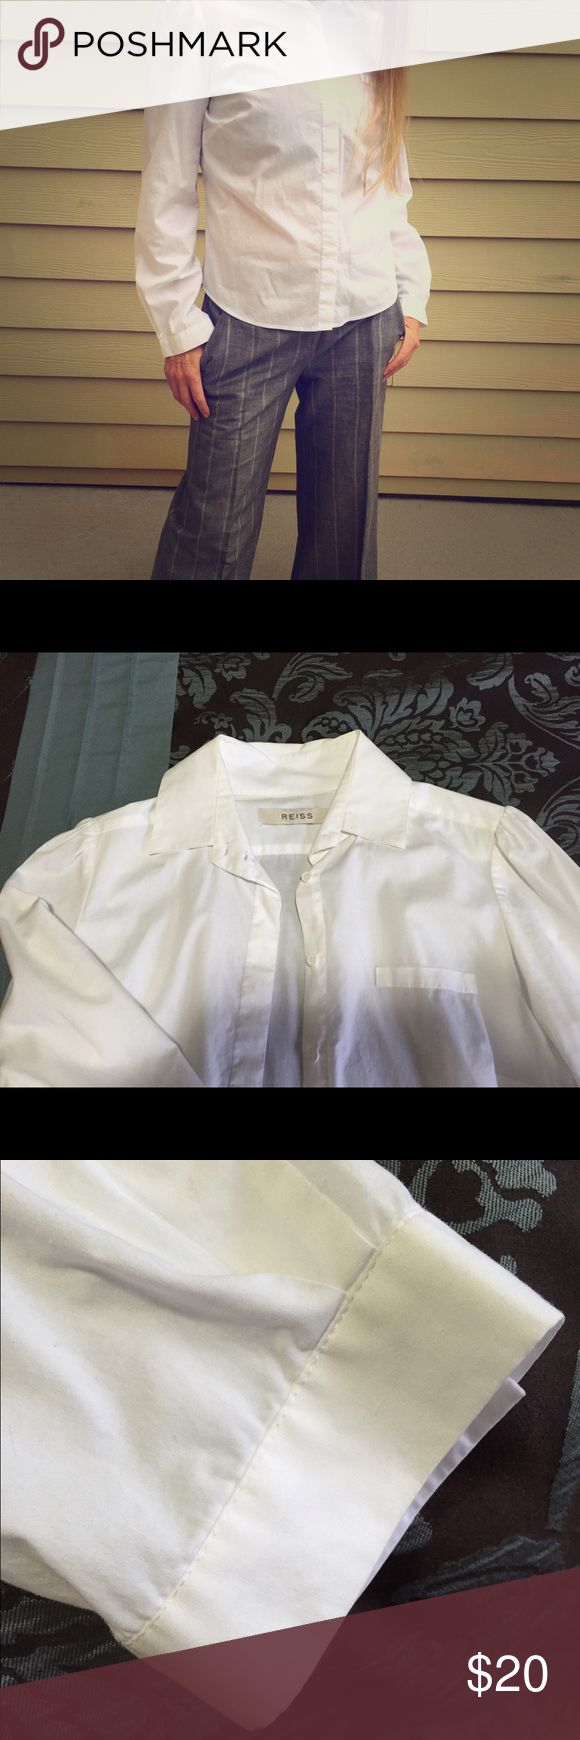 Reiss (UK designer brand) white blouse Gorgeous blouse with the slight puffy shoulders and real simple cuffs.  Great for the office or to dress up jeans! Reiss Tops Blouses